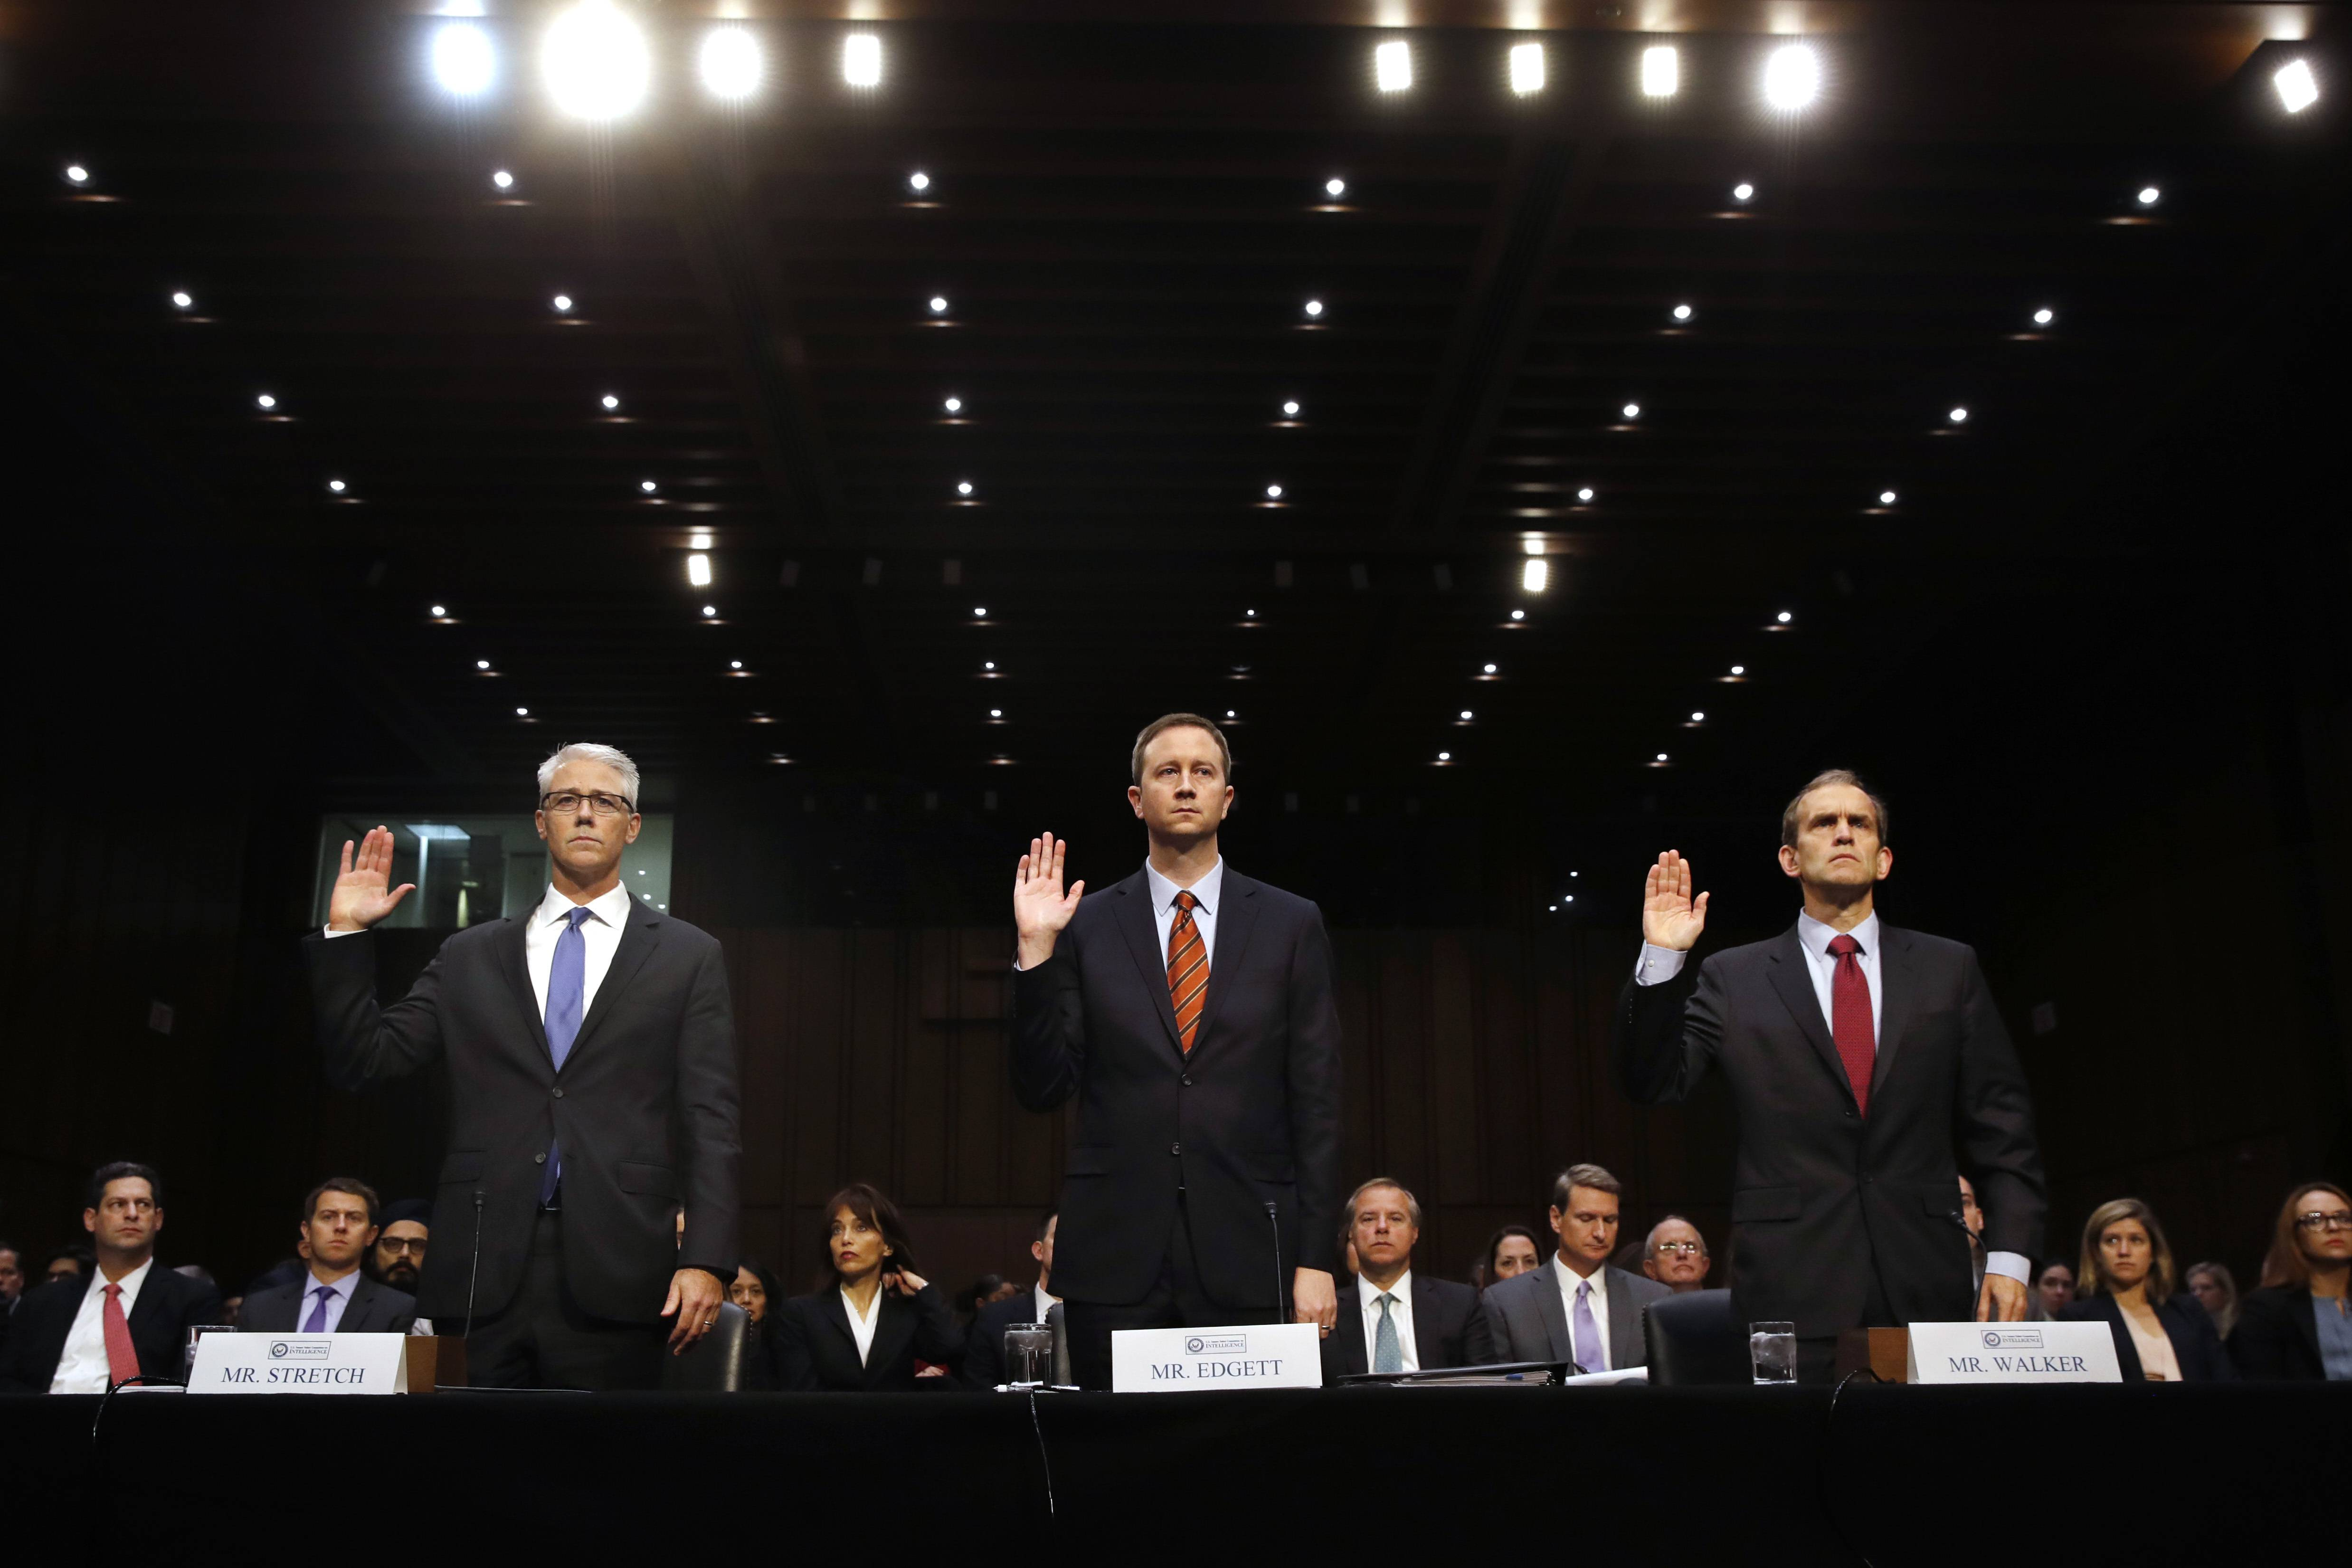 From left, Facebook's General Counsel Colin Stretch, Twitter's Acting General Counsel Sean Edgett, and Google's Senior Vice President and General Counsel Kent Walker, are sworn in for a Senate Intelligence Committee hearing on Russian election activity and technology, Wednesday, Nov. 1, 2017, on Capitol Hill in Washington.